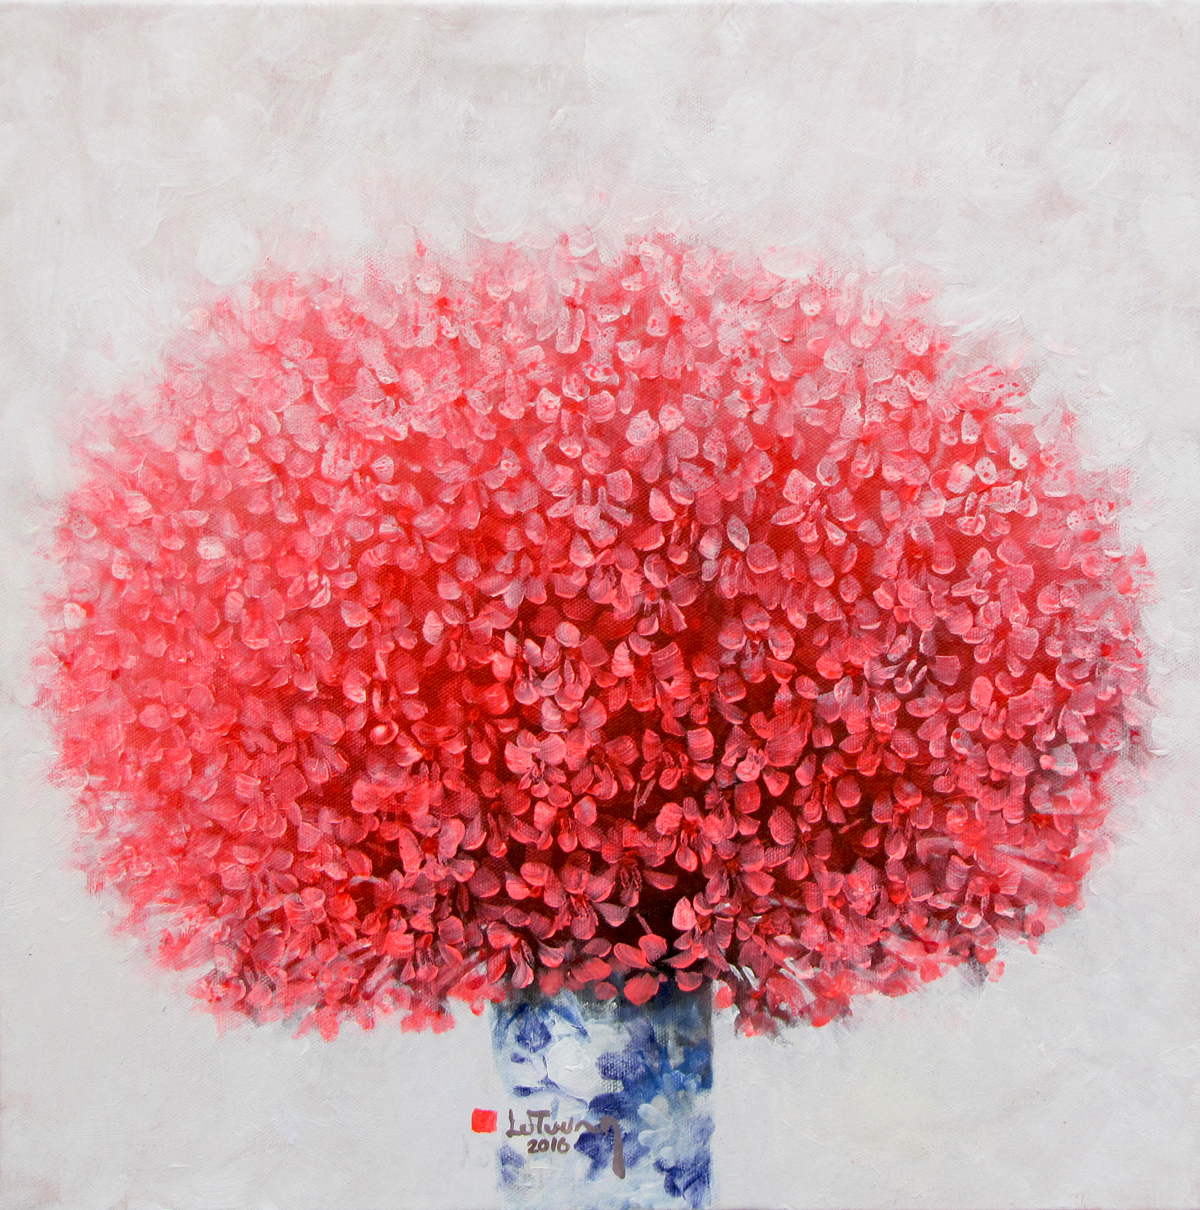 Vietnamese Art-Vase of Red Flowers, an Oil Painting on Canvas